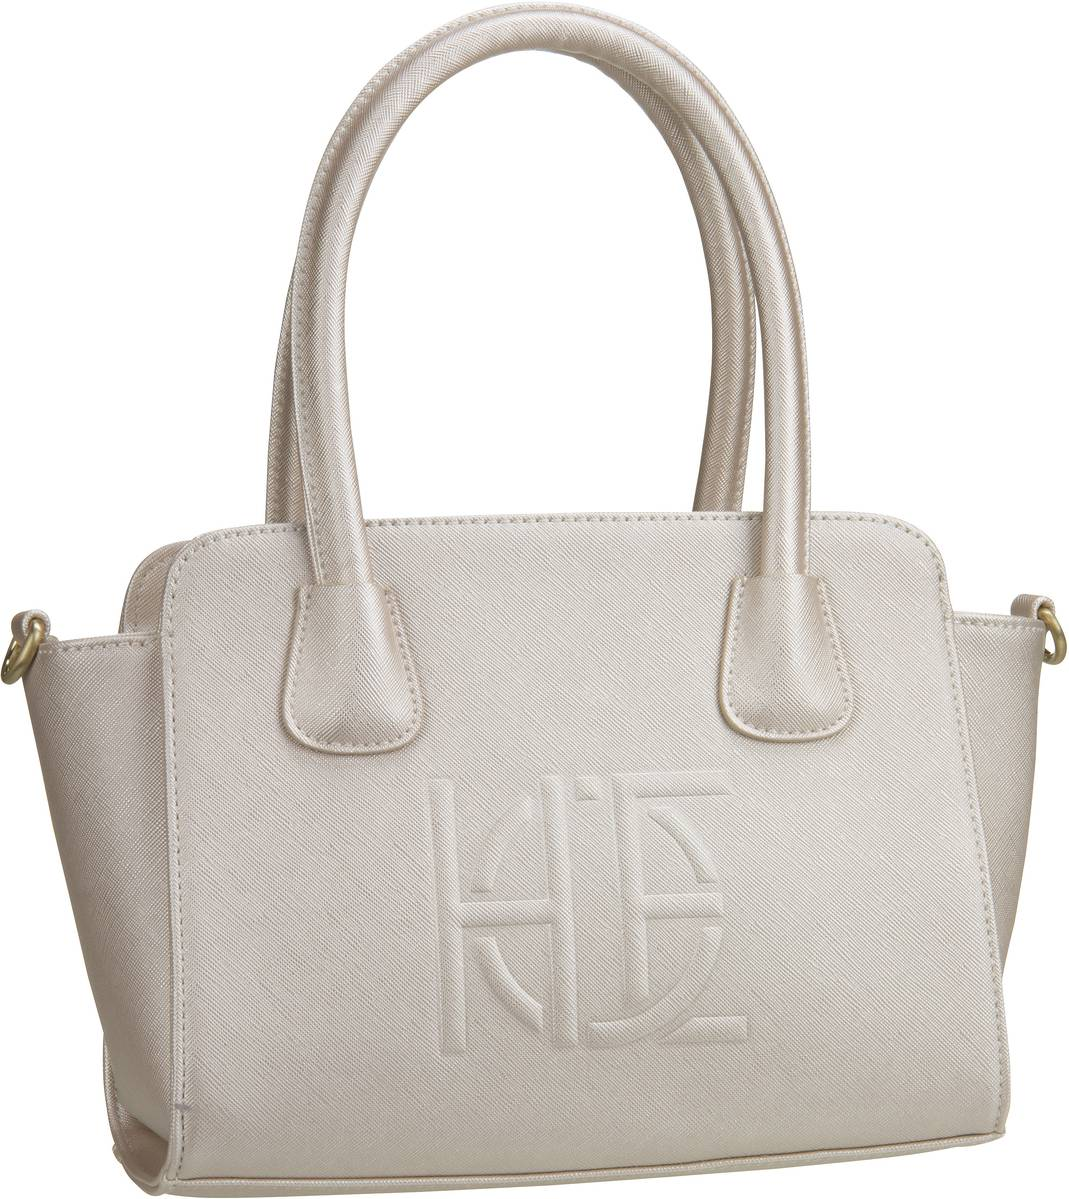 House of Envy Proud Bag Pearl - Handtasche